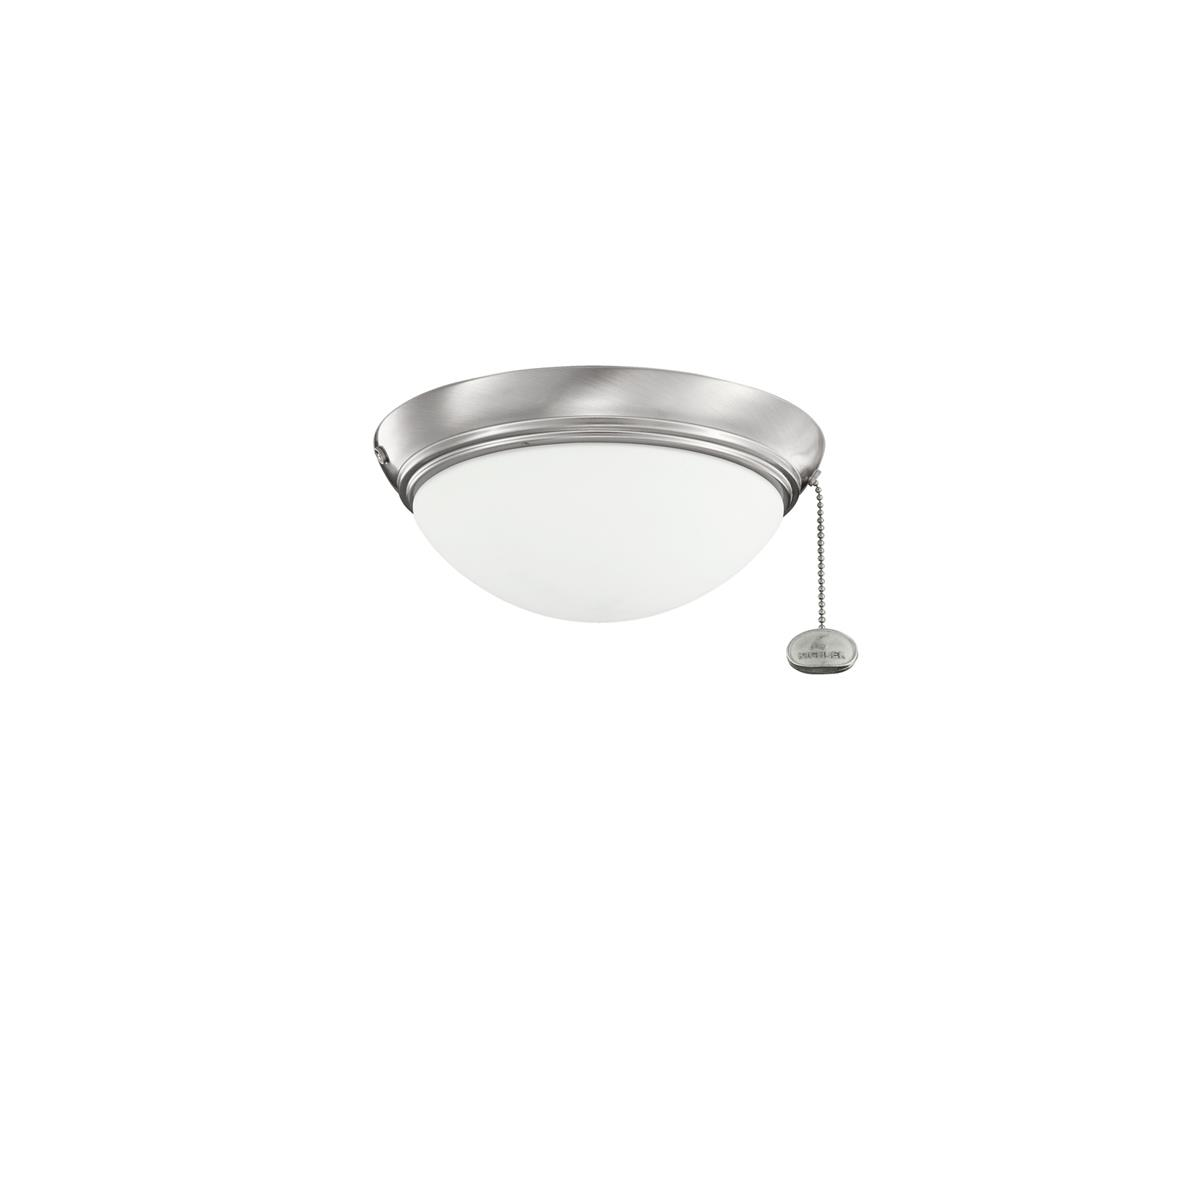 low profile ceiling fan light photo - 8